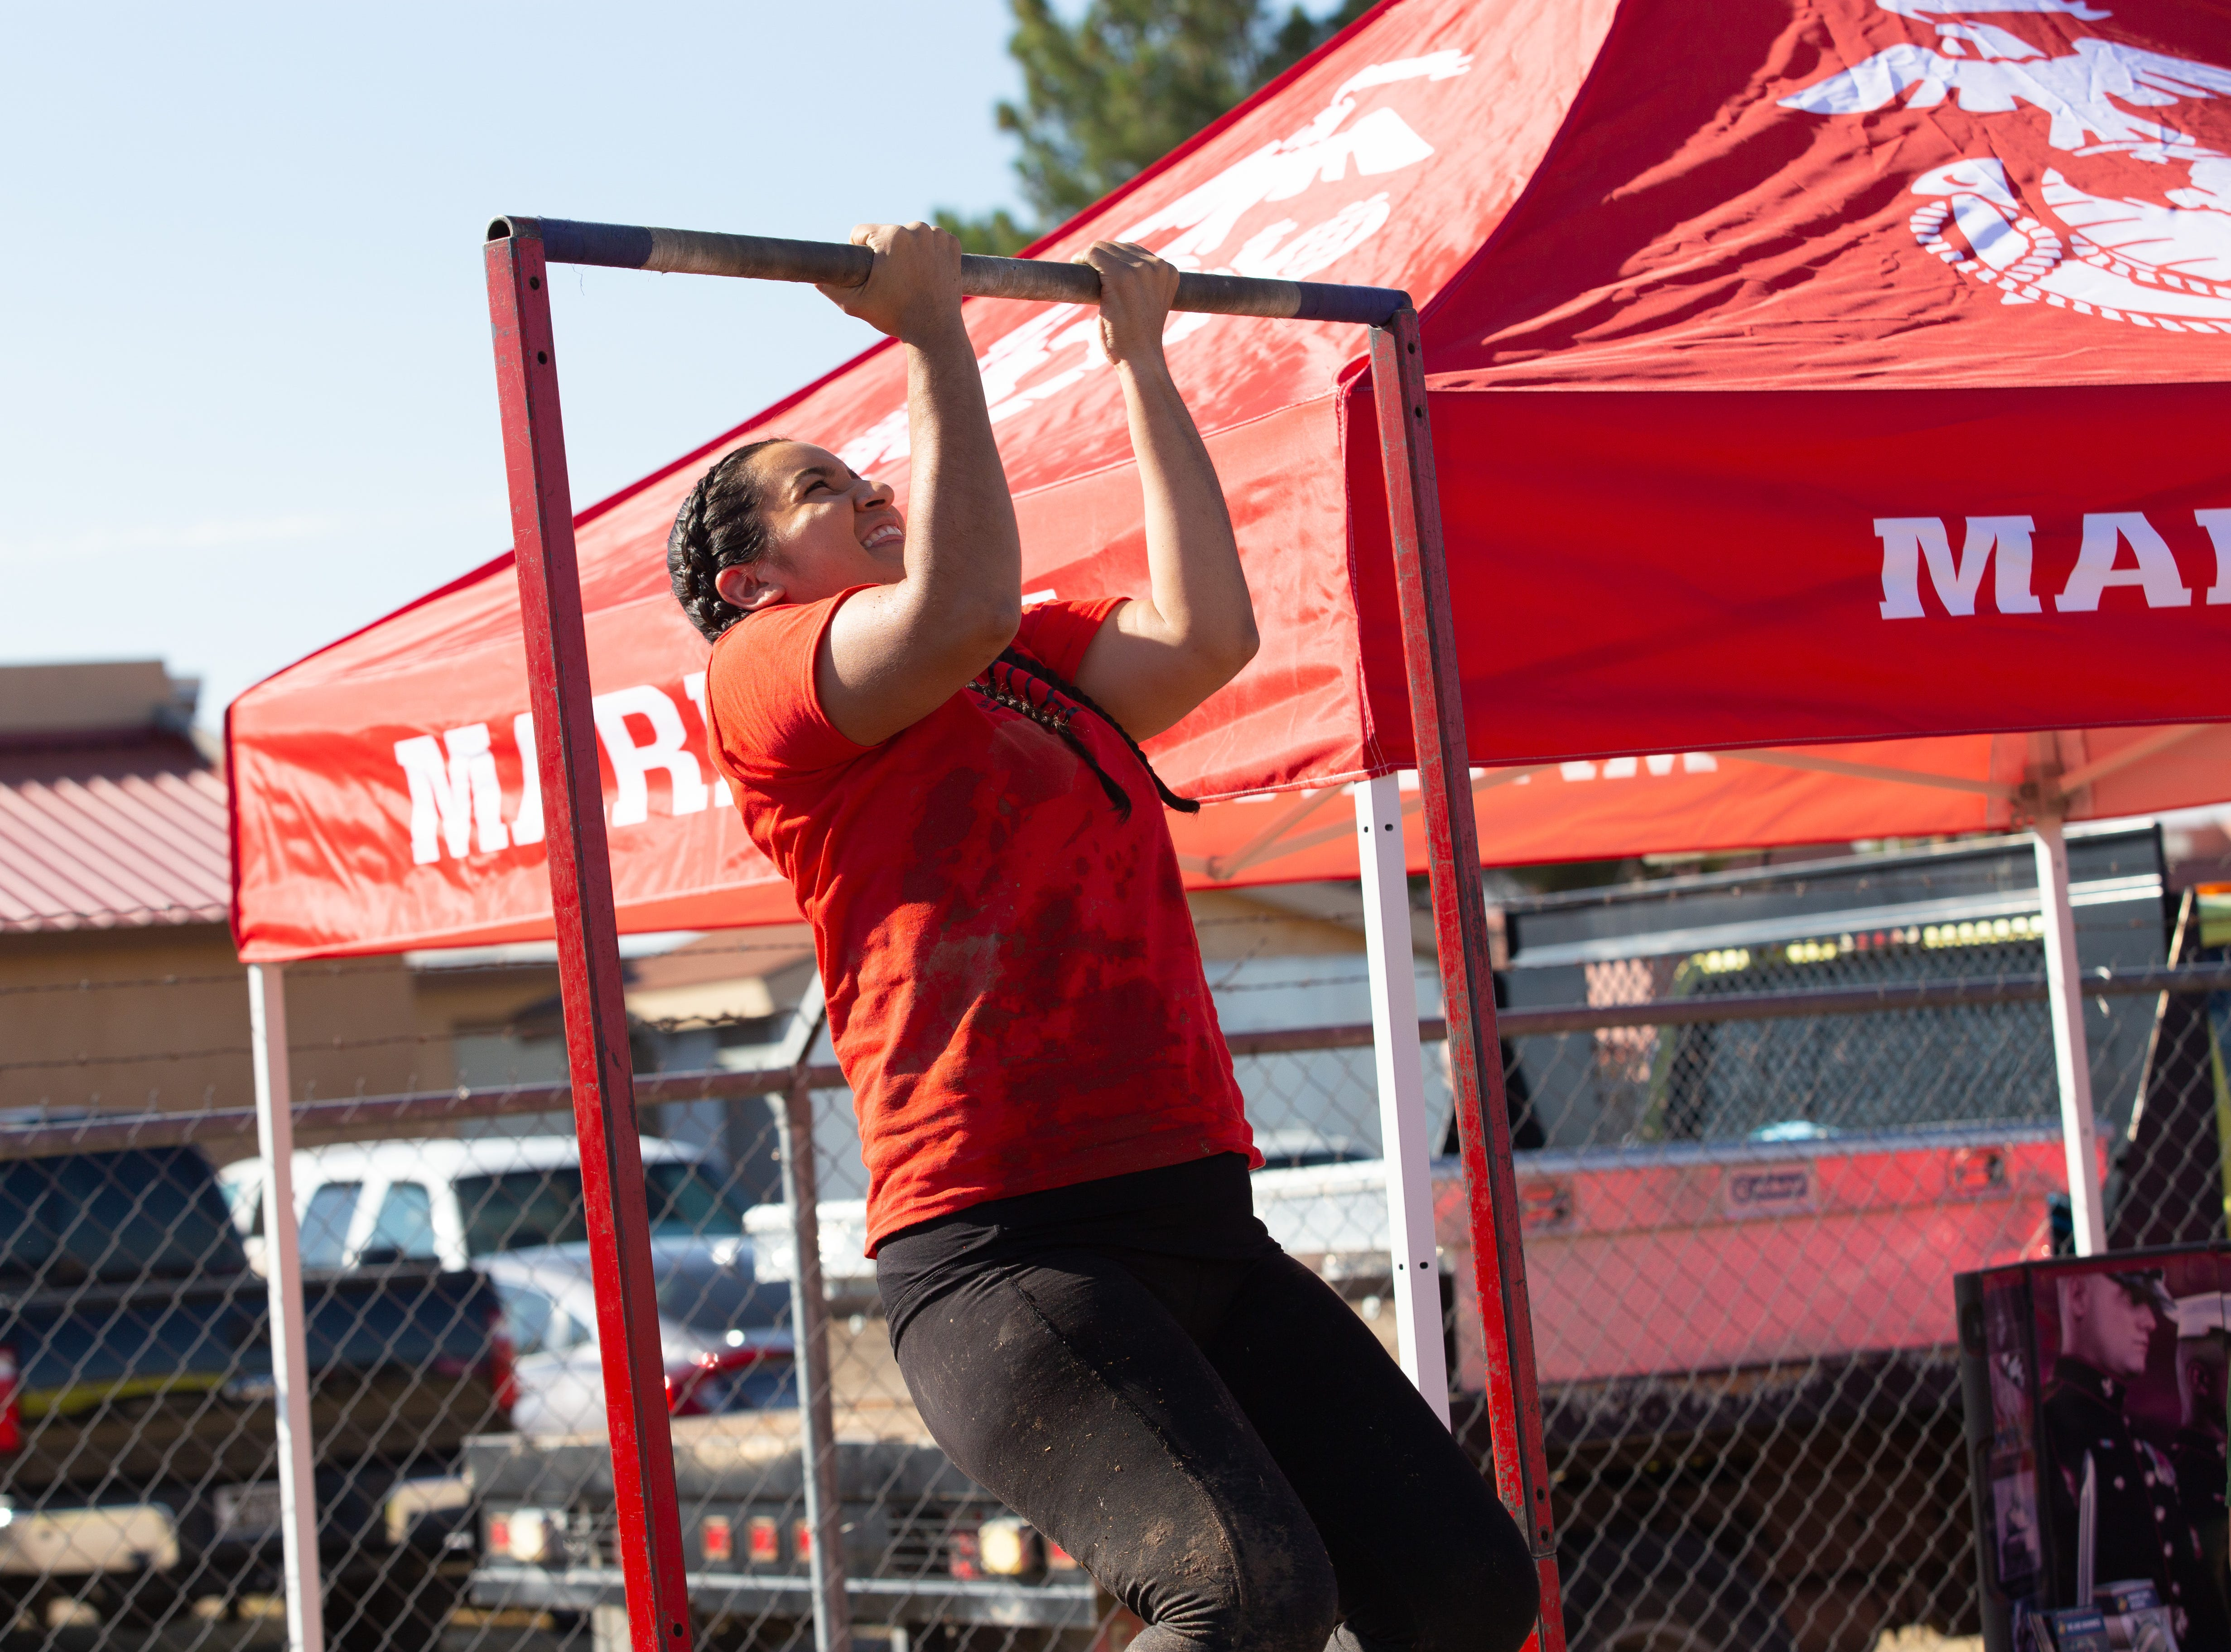 Veronica Sambrano tests her endurance at the Marine Corp challenge during the 9th Annual Mudd Volleyball tournament on September 8, 2018.